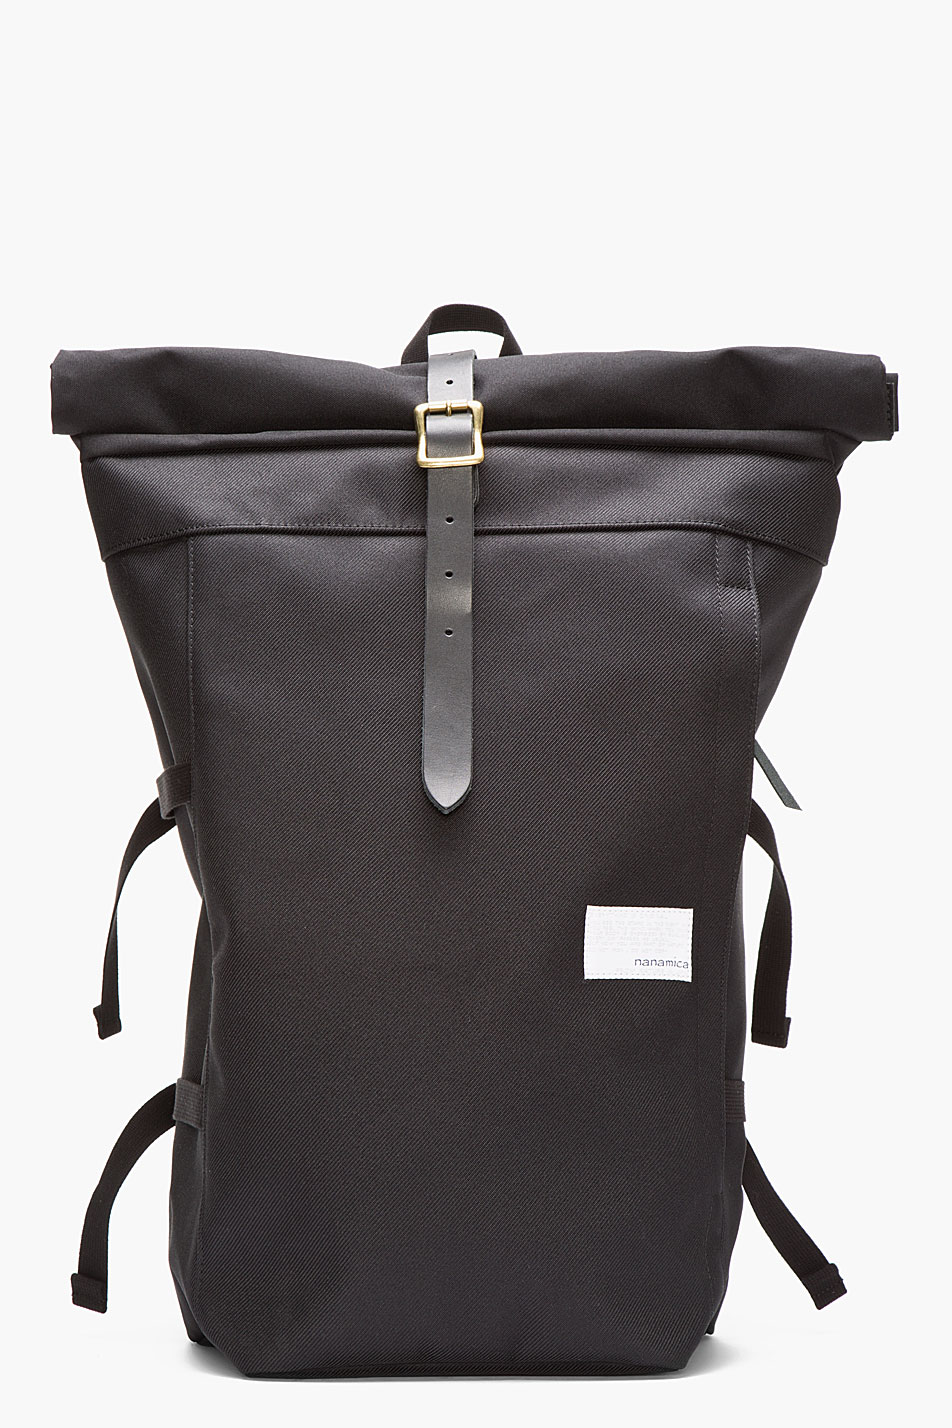 Nanamica Black Roll Top Cycling Backpack In Black For Men